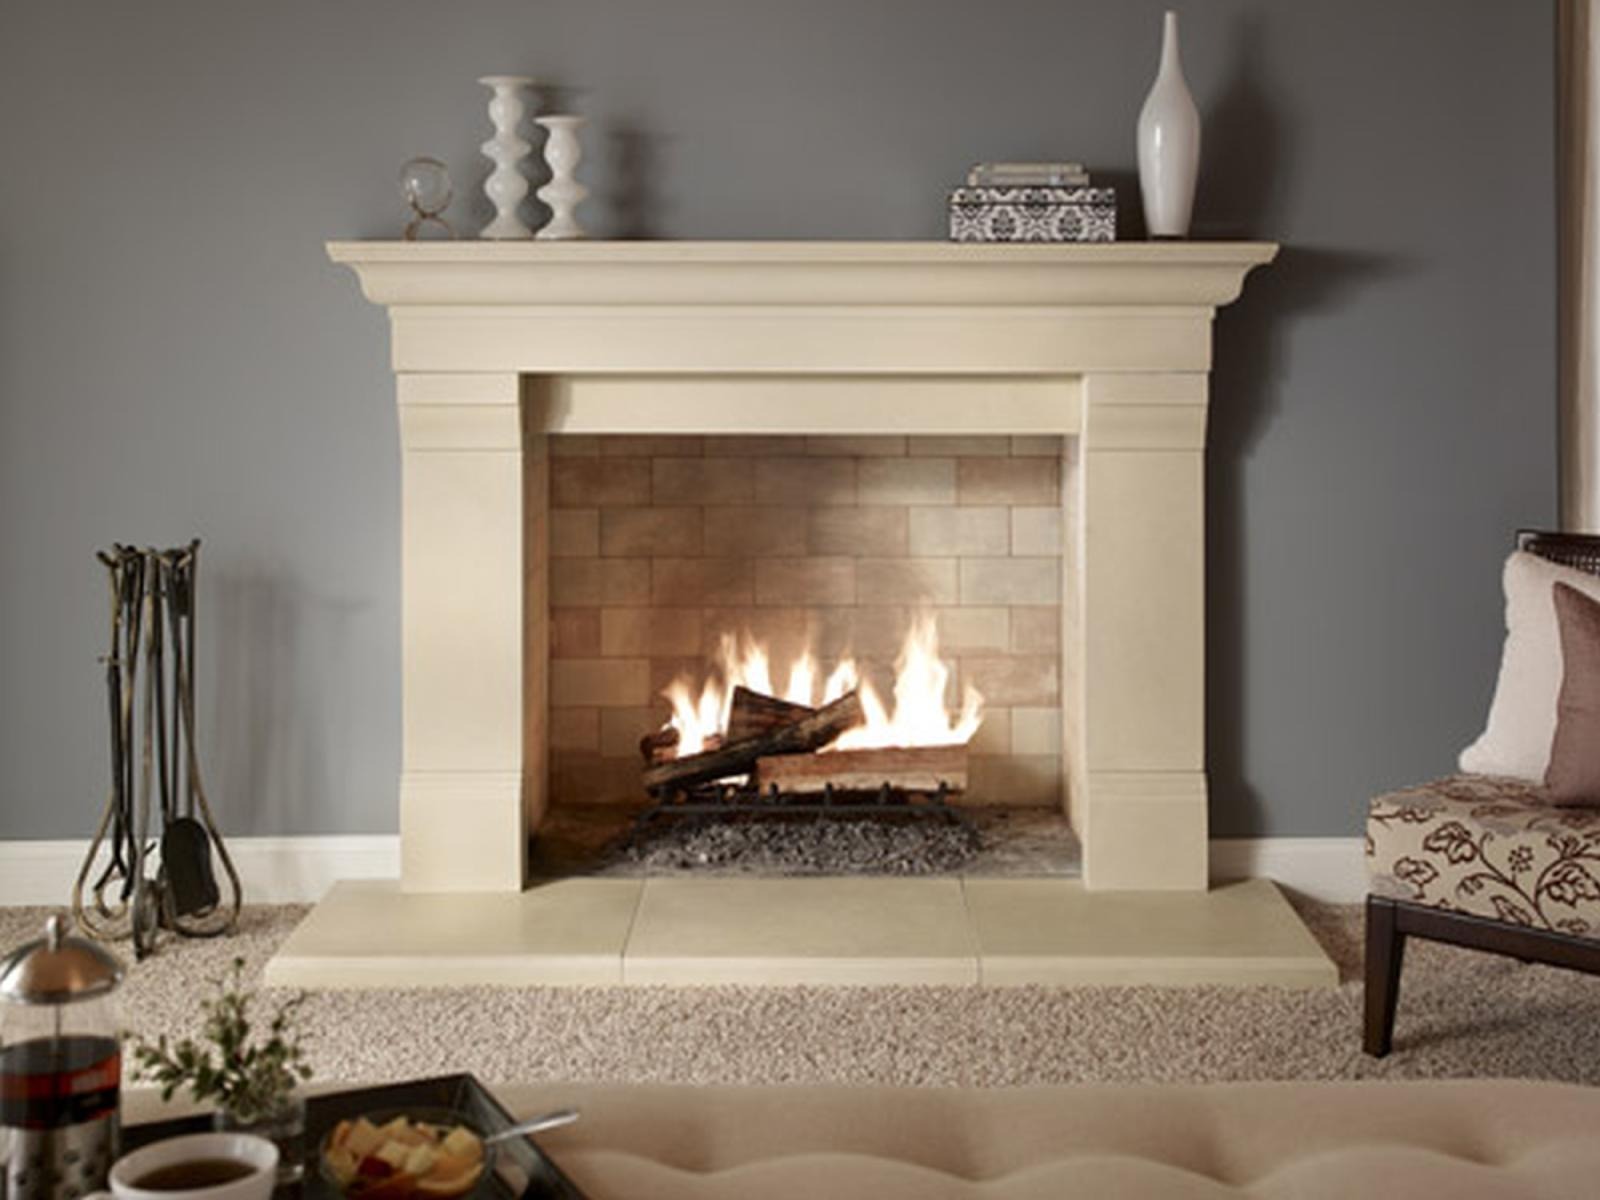 How to clean a limestone fireplace surround fireplace Fireplace surround ideas